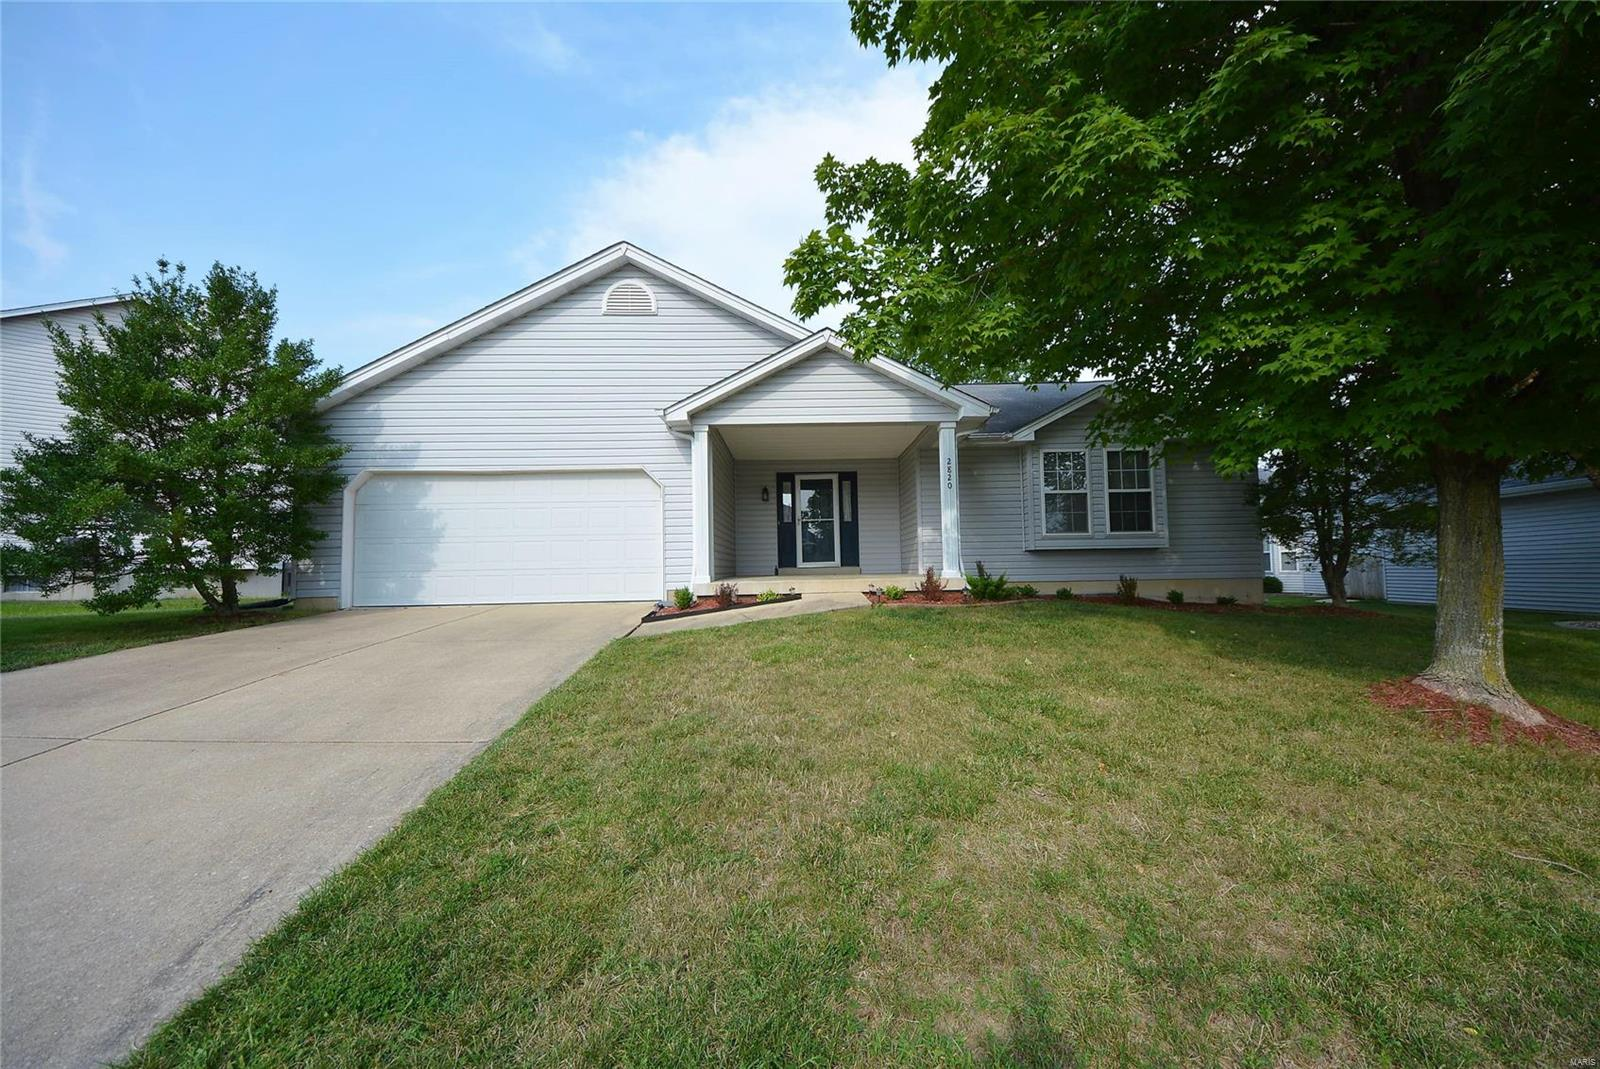 WELCOME HOME to this 3BR 2BTH great rm ranch w/1750+SF in the heart of O'Fallon. The exterior of this home has beautiful curb appeal w/vinyl front, lush landscaping & 2 car garage. Walking in you'll notice the open floor plan w/the spacious great rm offing tall vaulted ceilings & featuring a WB fireplace flanked by windows & opens to the kitchen w/Corian countertops, bkft bar, stylish black appliances, pantry, bkft rm & vaulted sun rm w/slider to the deck overlooking the lvl yard perfect for outdoor enjoyment. The MF master suite provides a walk in closet & private full bth. 2add'l BR, full BTH & laundry complete the main. Other features included newer HVAC, fresh paint & Great location w/easy access to major hwys, great schools, shopping & restaurants. This is a well cared for, solid home that is move in ready! A MUST SEE!